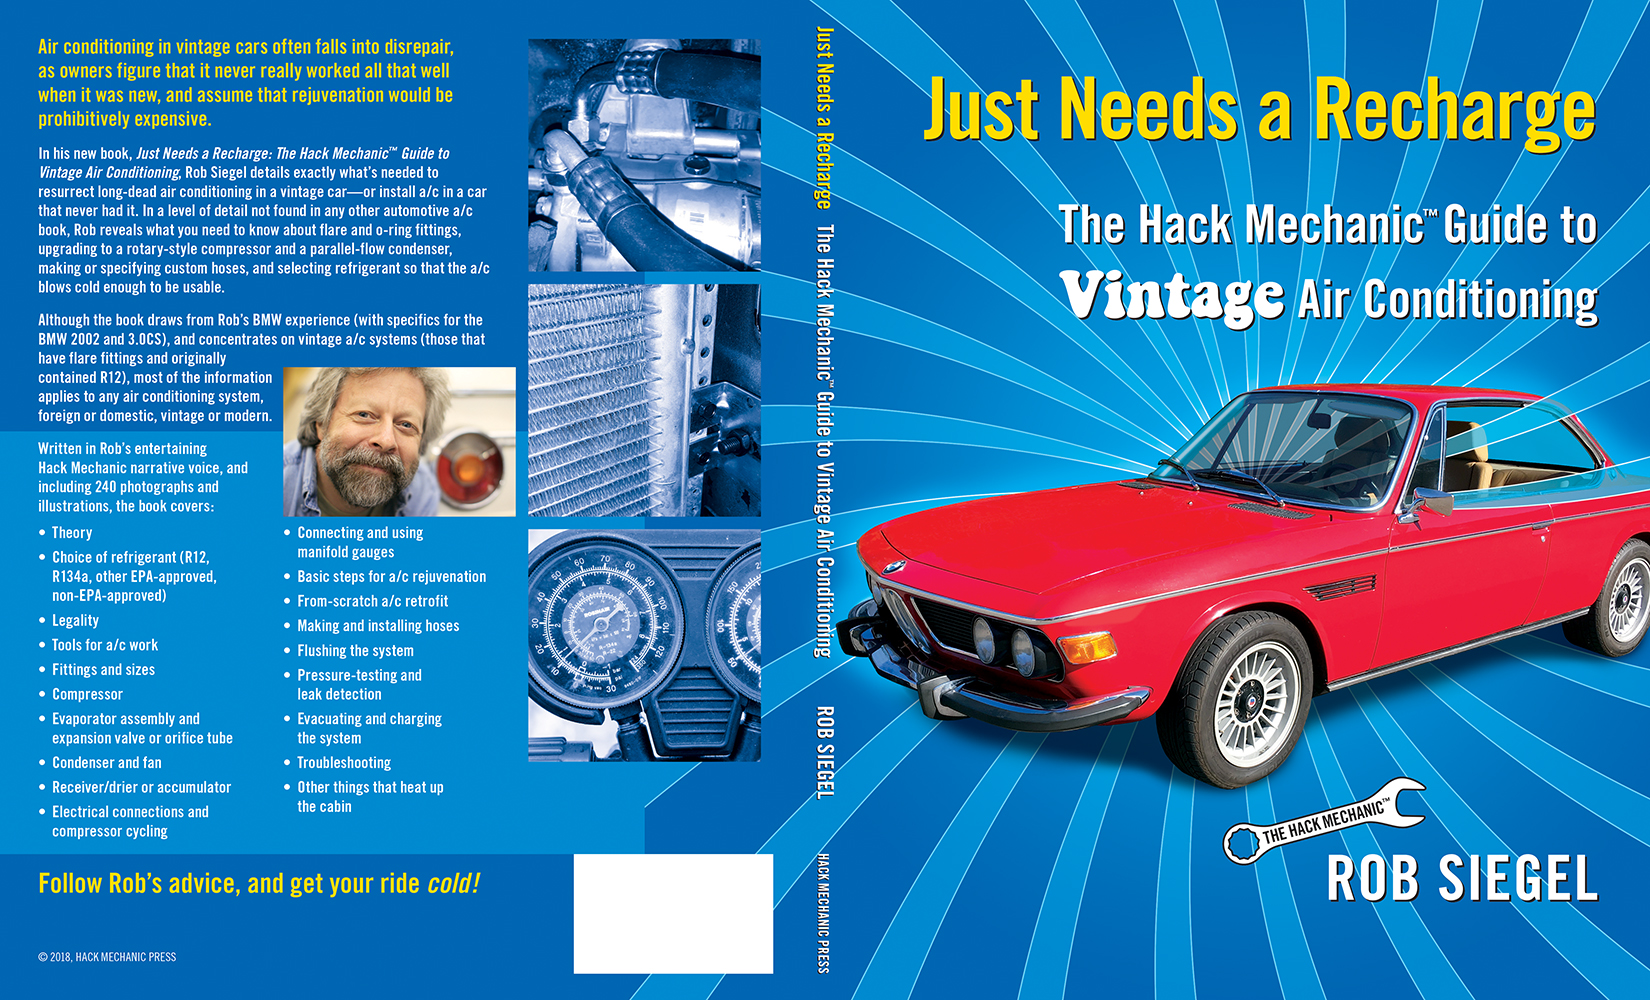 BOOK REVIEW: Just Needs A Recharge – The Hack Mechanic's Guide to Vintage AC